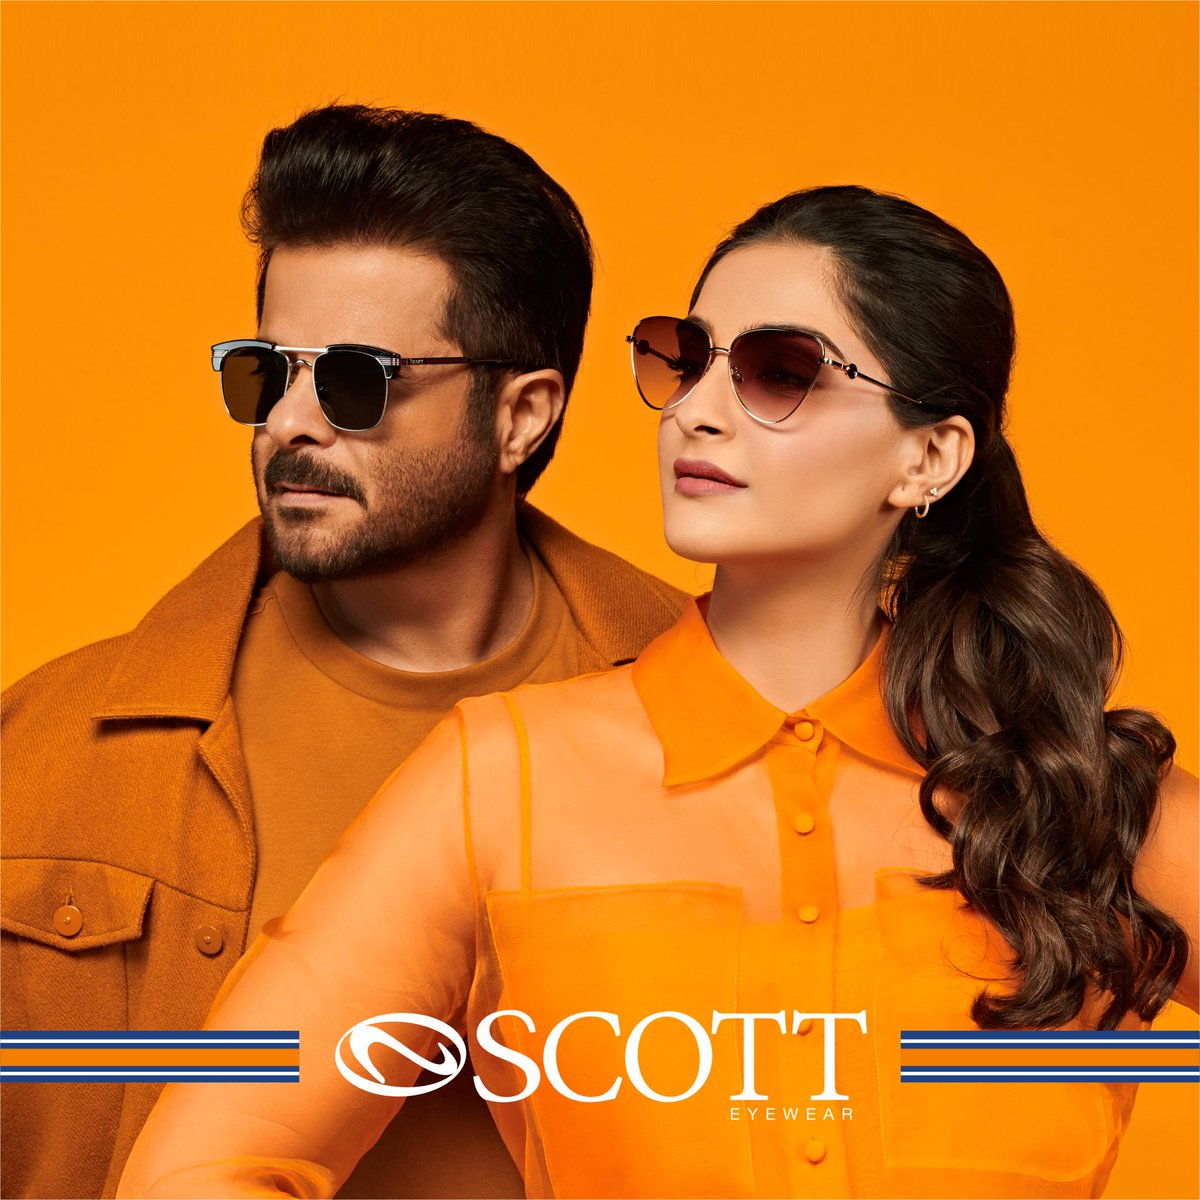 A new pair of #Scotteyewear is always a great idea!  Are you ready to bring in the new season with me and my Signature Styles right here at @ScottEyewear ? Come on and check out the styles that will bring out your best.  #scotteyewearxAKSK #SignatureLine #AKSK #ss20 #scottsunnies